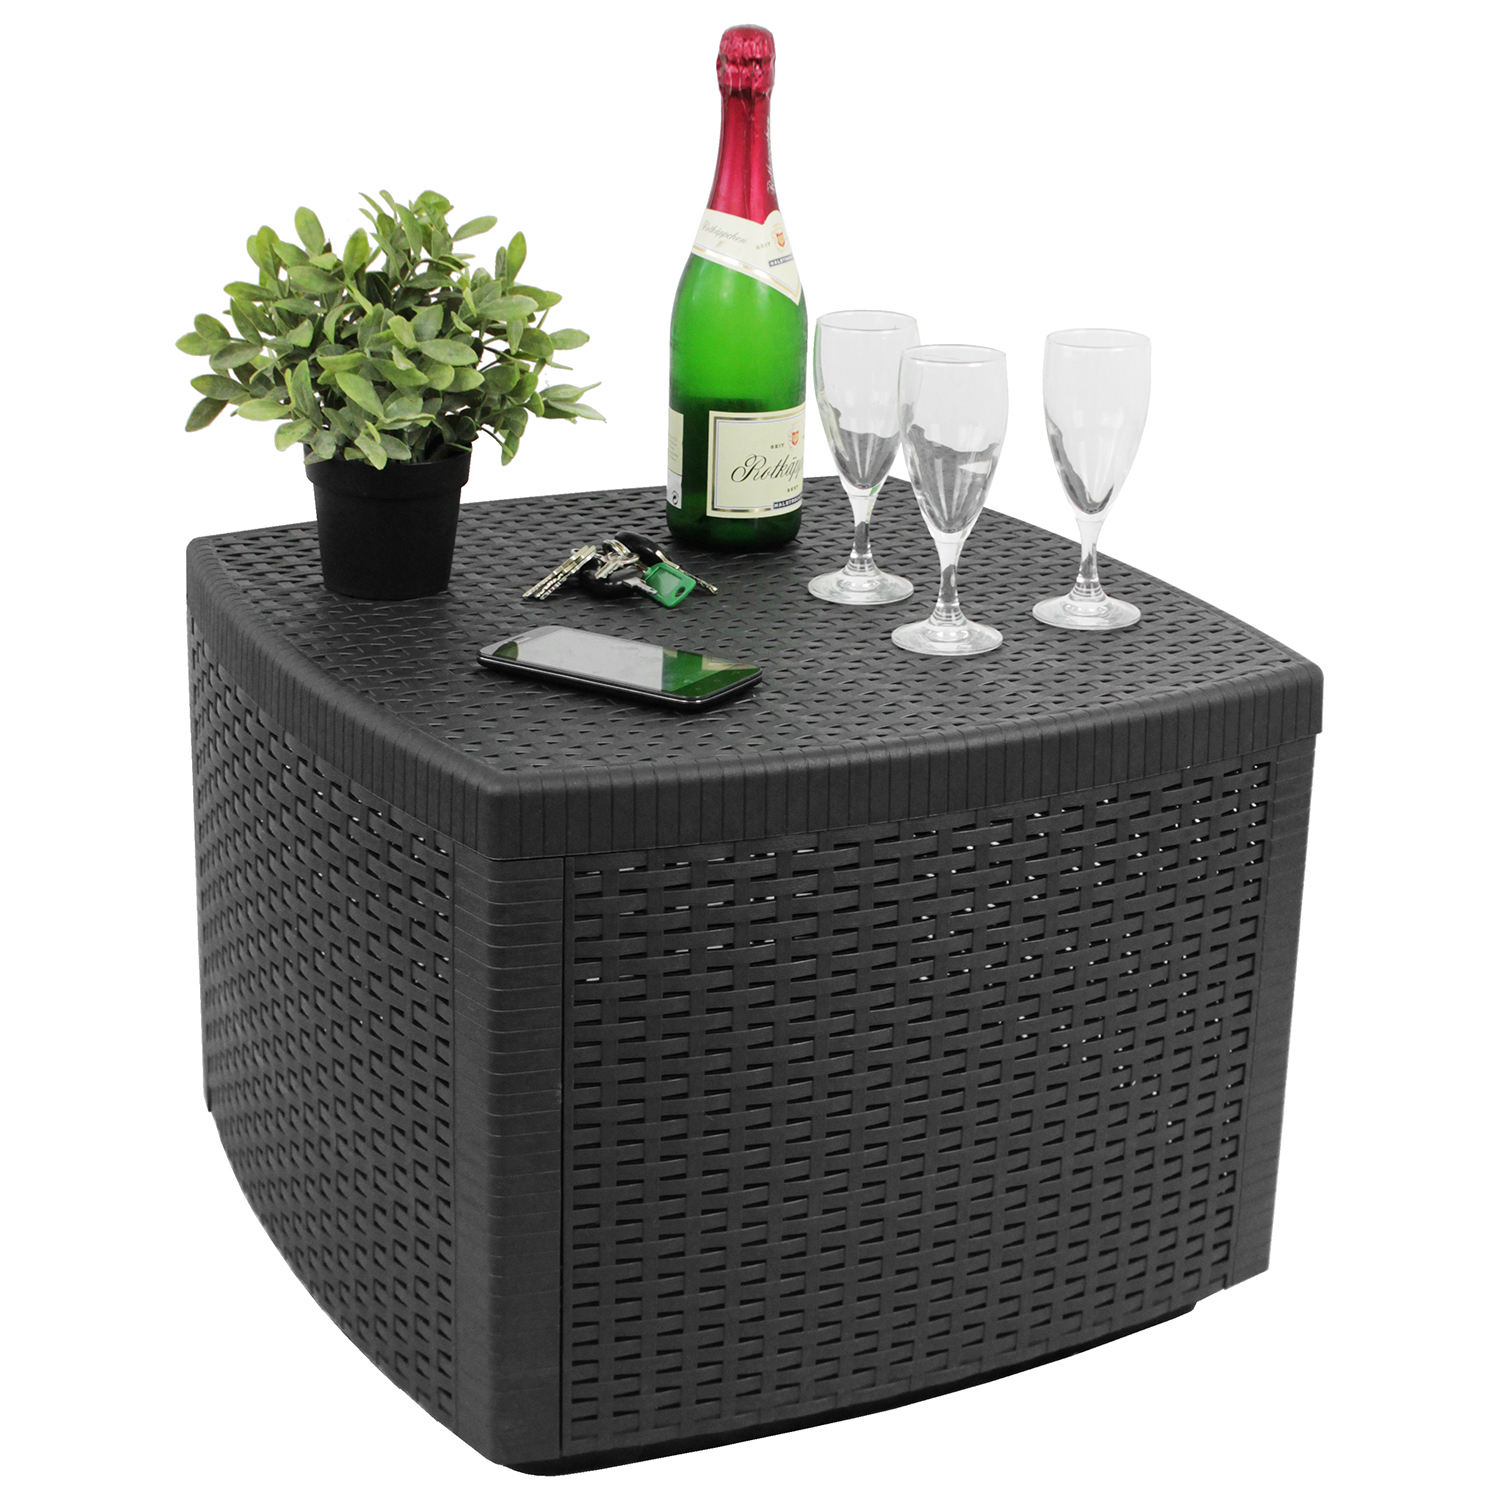 beistelltisch gartentisch loungetisch 53x53xh40cm rattan optik kunststoff anthr ebay. Black Bedroom Furniture Sets. Home Design Ideas